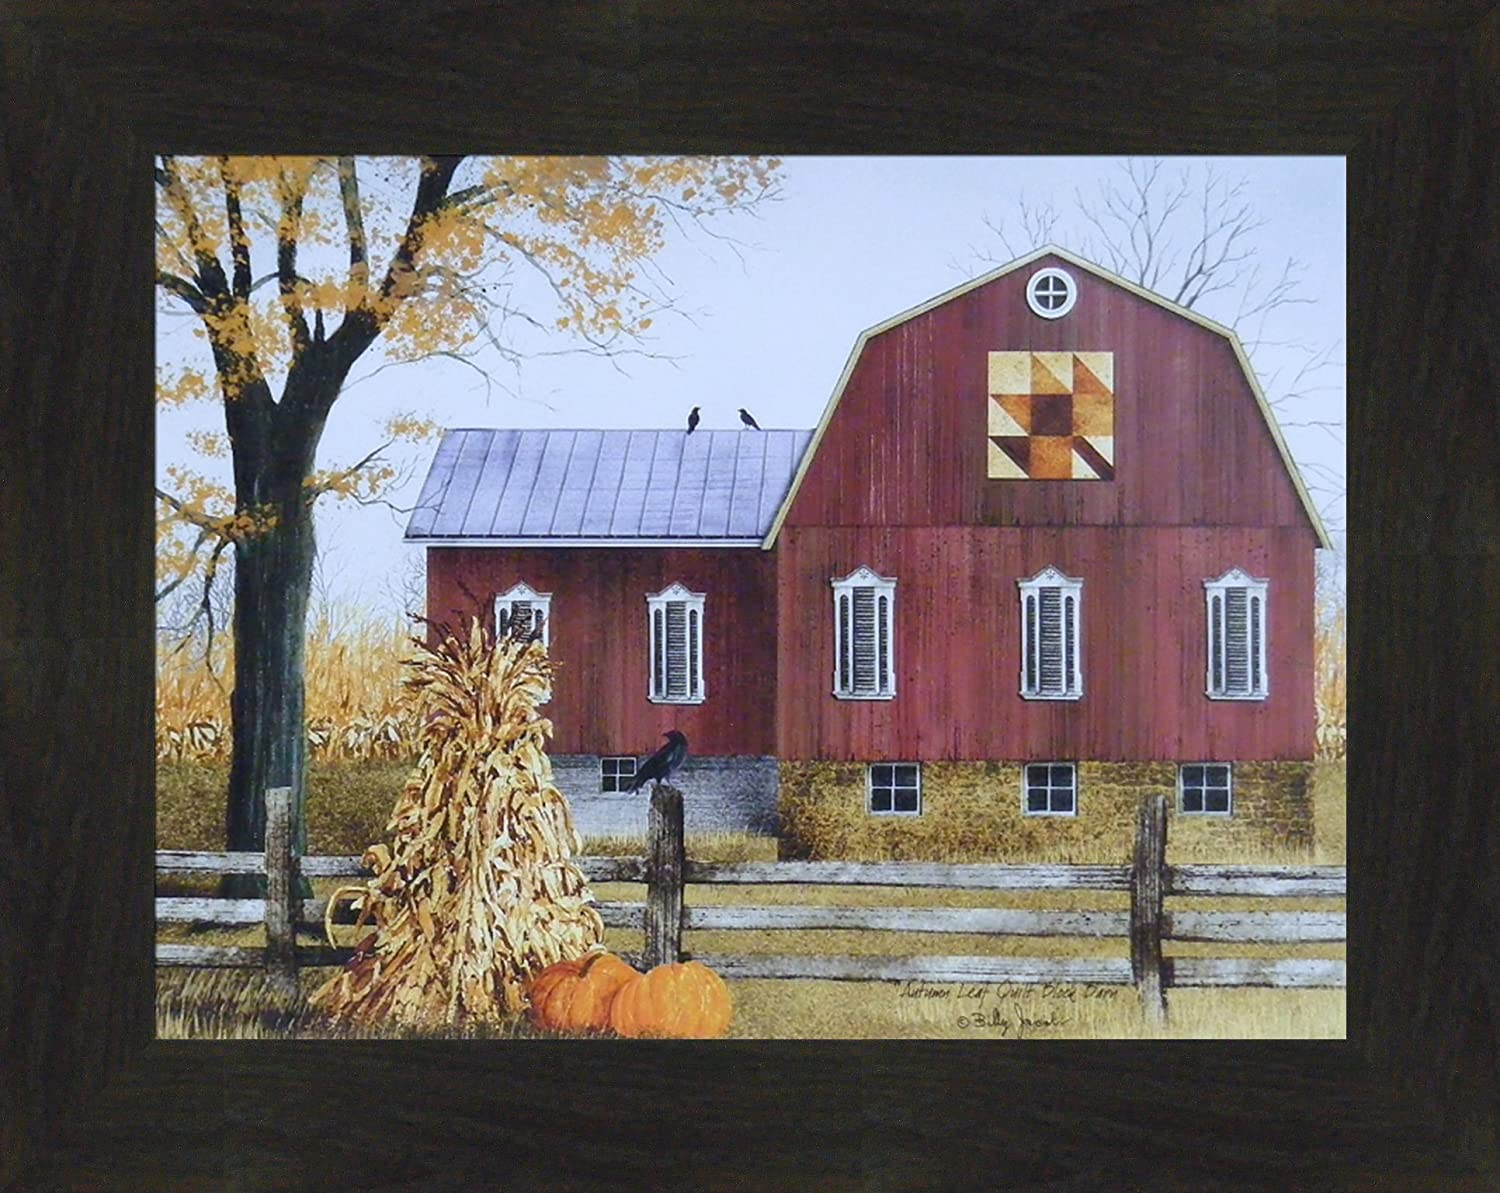 Amazon Com Home Cabin Decor Autumn Leaf Quilt Block Barn By Billy Jacobs 15x19 Barn Pumpkins Corn Stalks Fall Folk Art Country Primitive Print Framed Picture Posters Prints